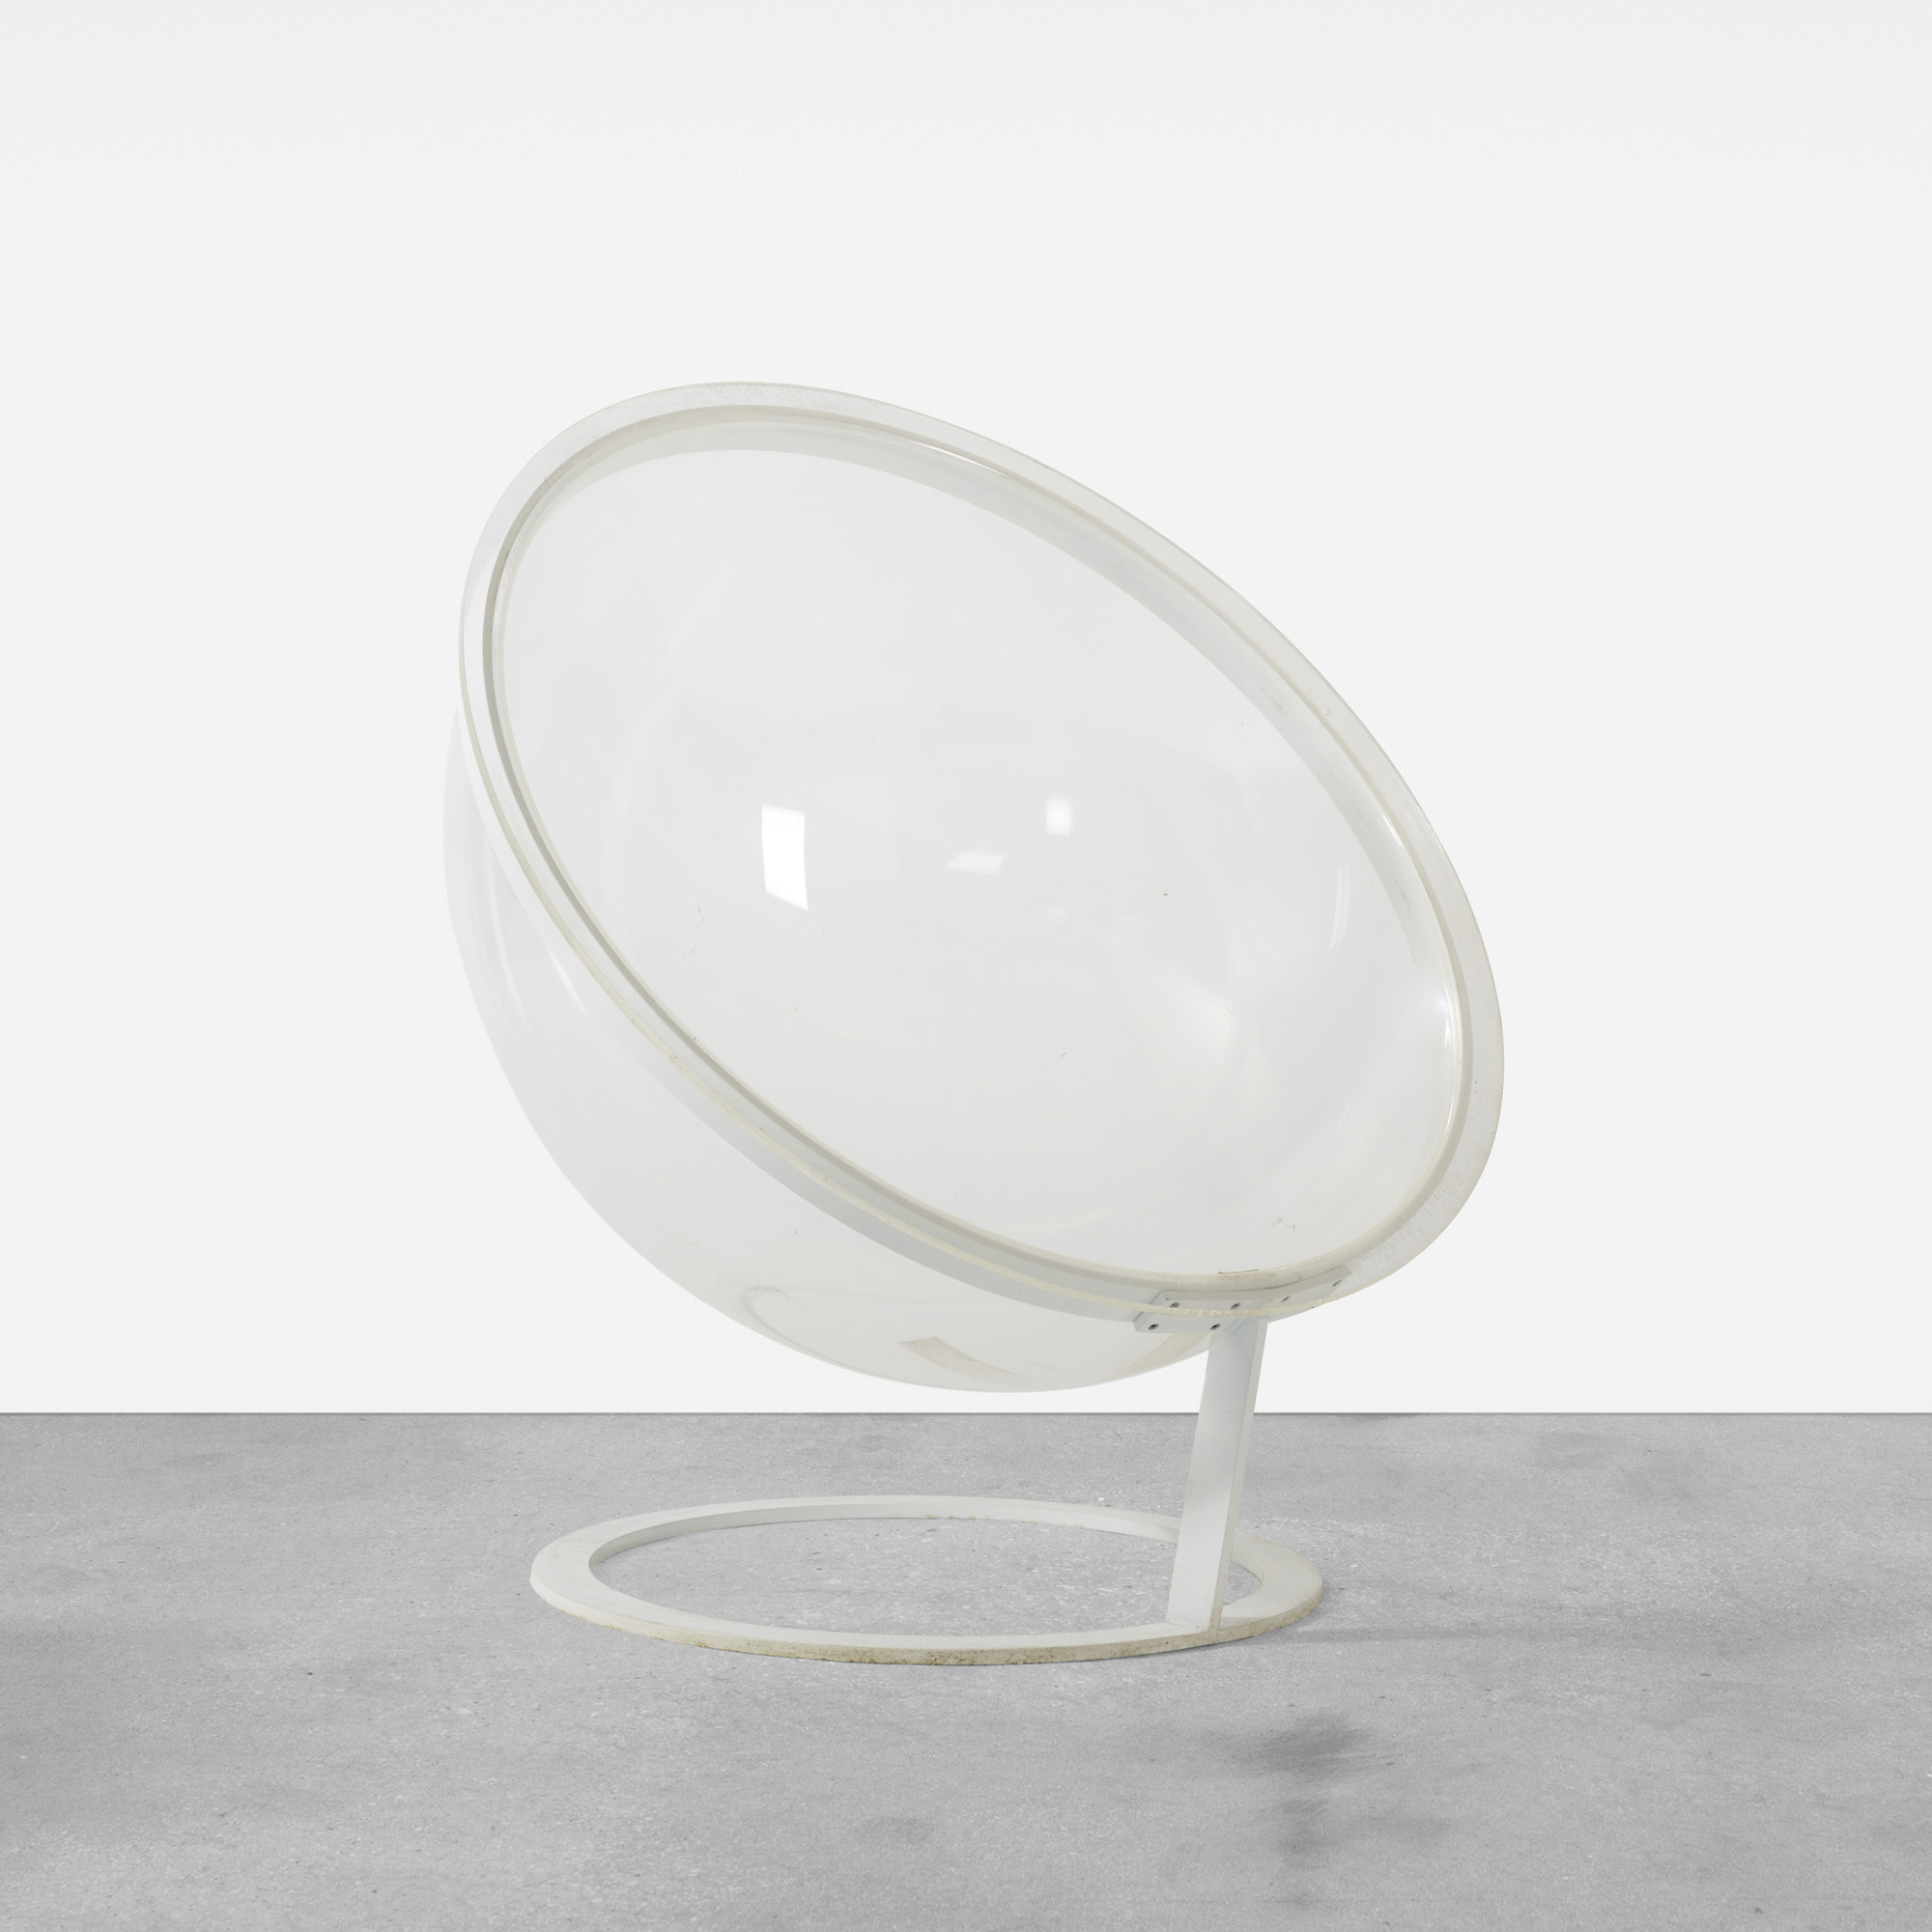 302 christian daninos bubble chair 1 of 2